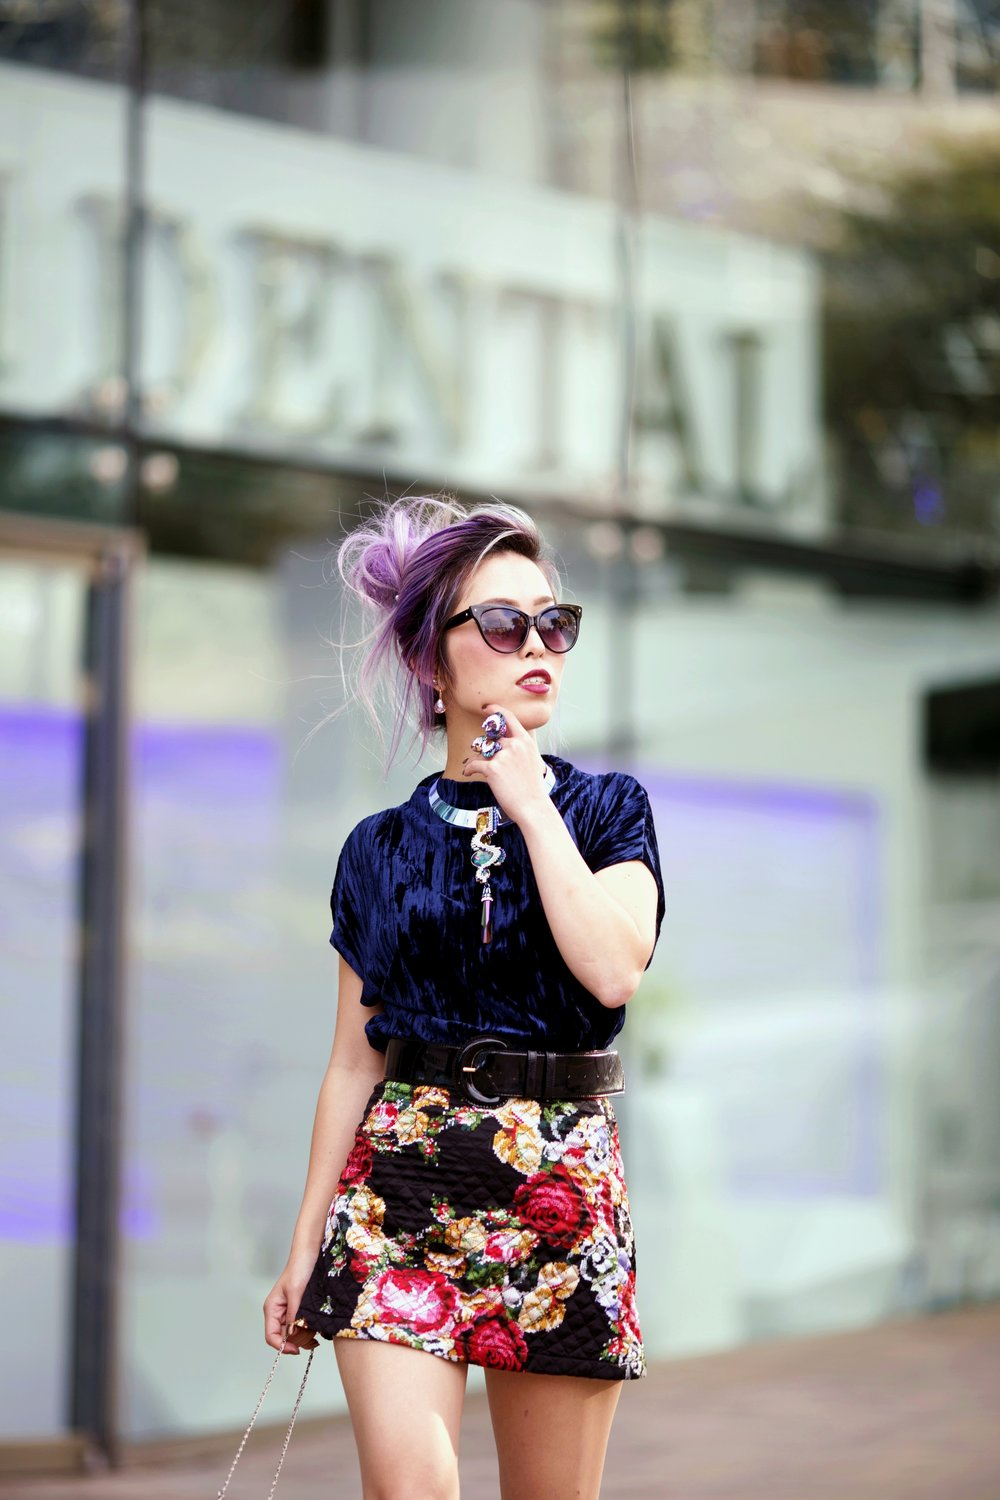 ZARA Blue Velvet Top_Forever 21 Floral Print Mini Skirt_Mango Patent Belt_Kate Spade Sheer Ankle Socks_Qupid Silver Pumps_Aldo Cateye Sunglasses_Swarovski Fluorescent Necklace & Fluorescent Ring_Aika's Love Closet_Seattle Fashion Blogger_Japanese_Lavender Hair_Mermaid Hair 18